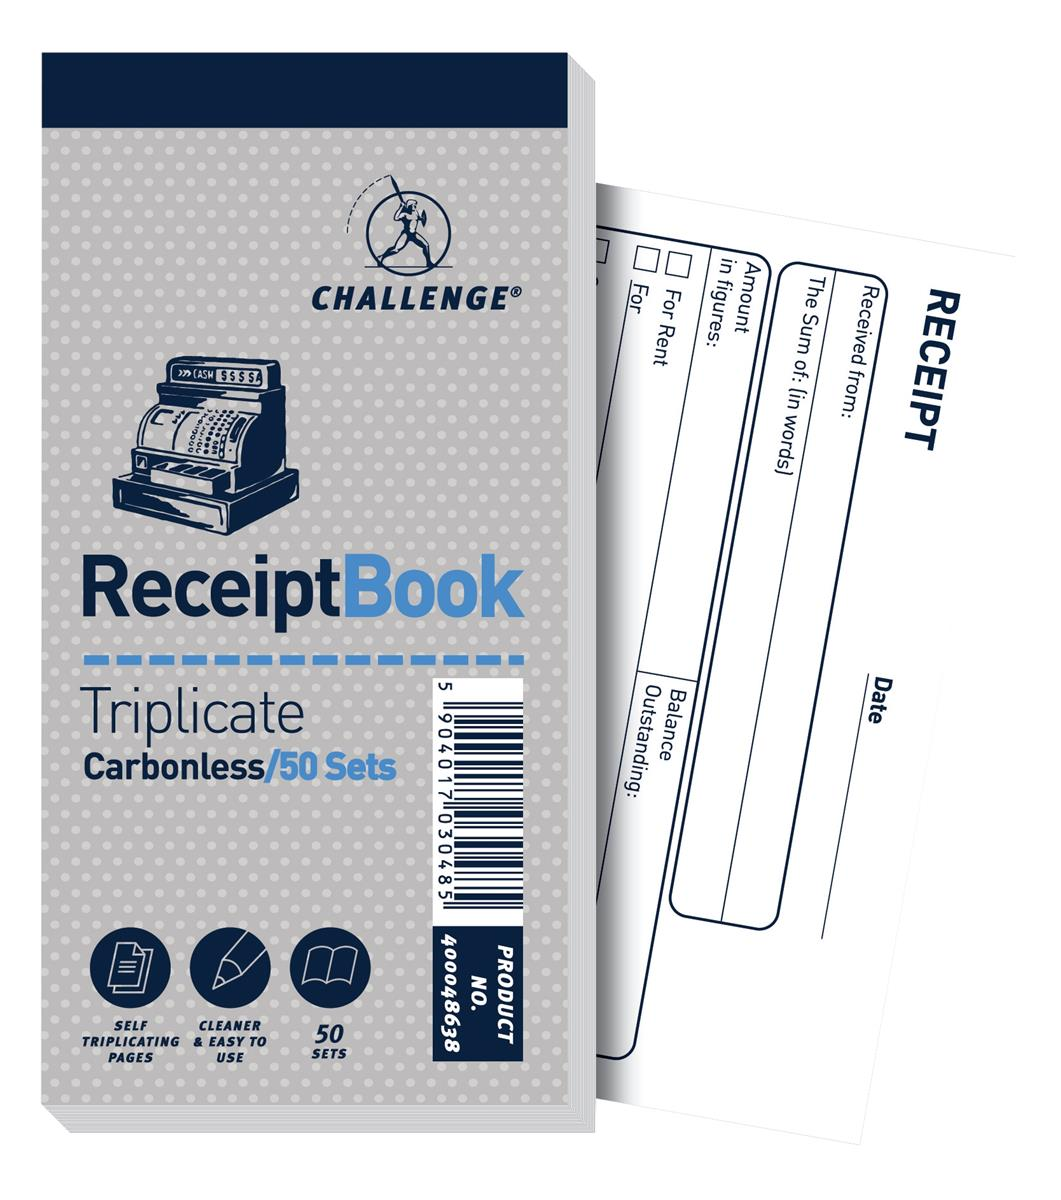 Image for Challenge Triplicate Book Carbonless Receipt 50 Receipts 140x70mm Ref 400048638 [Pack 10]